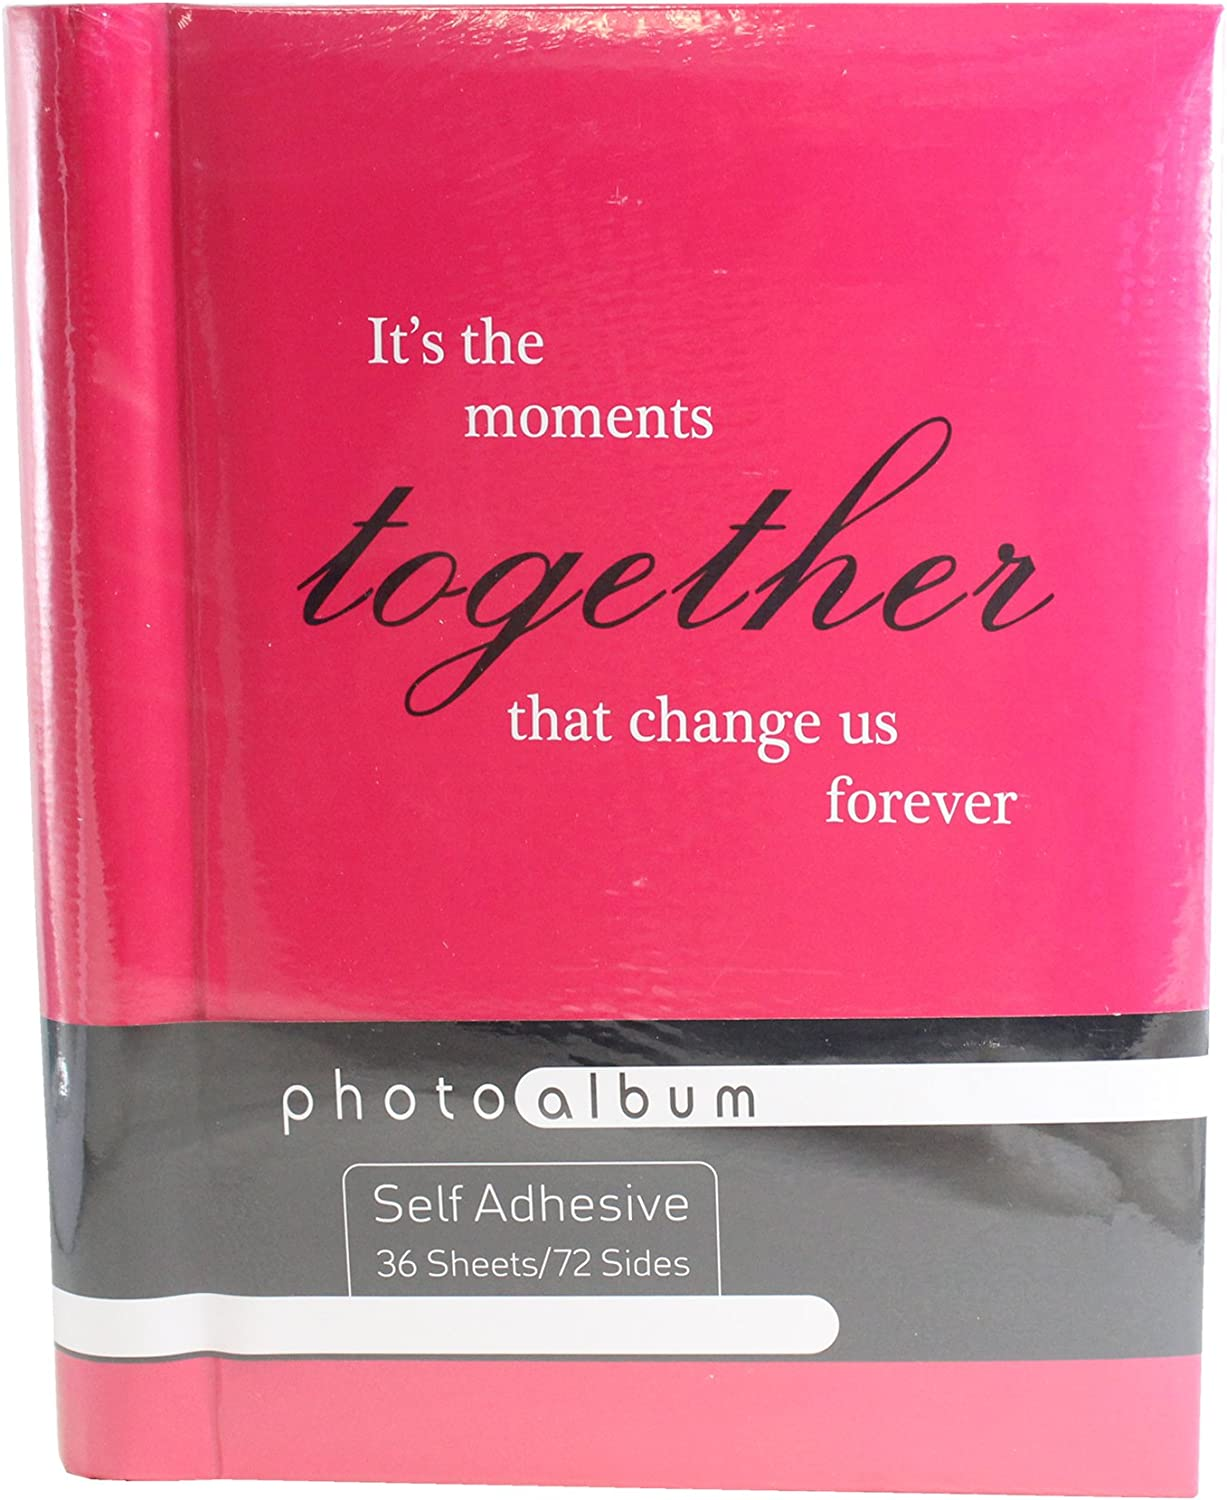 Self Adhesive Photo Album with Slogan 36 Pages Spiral Bound Pink